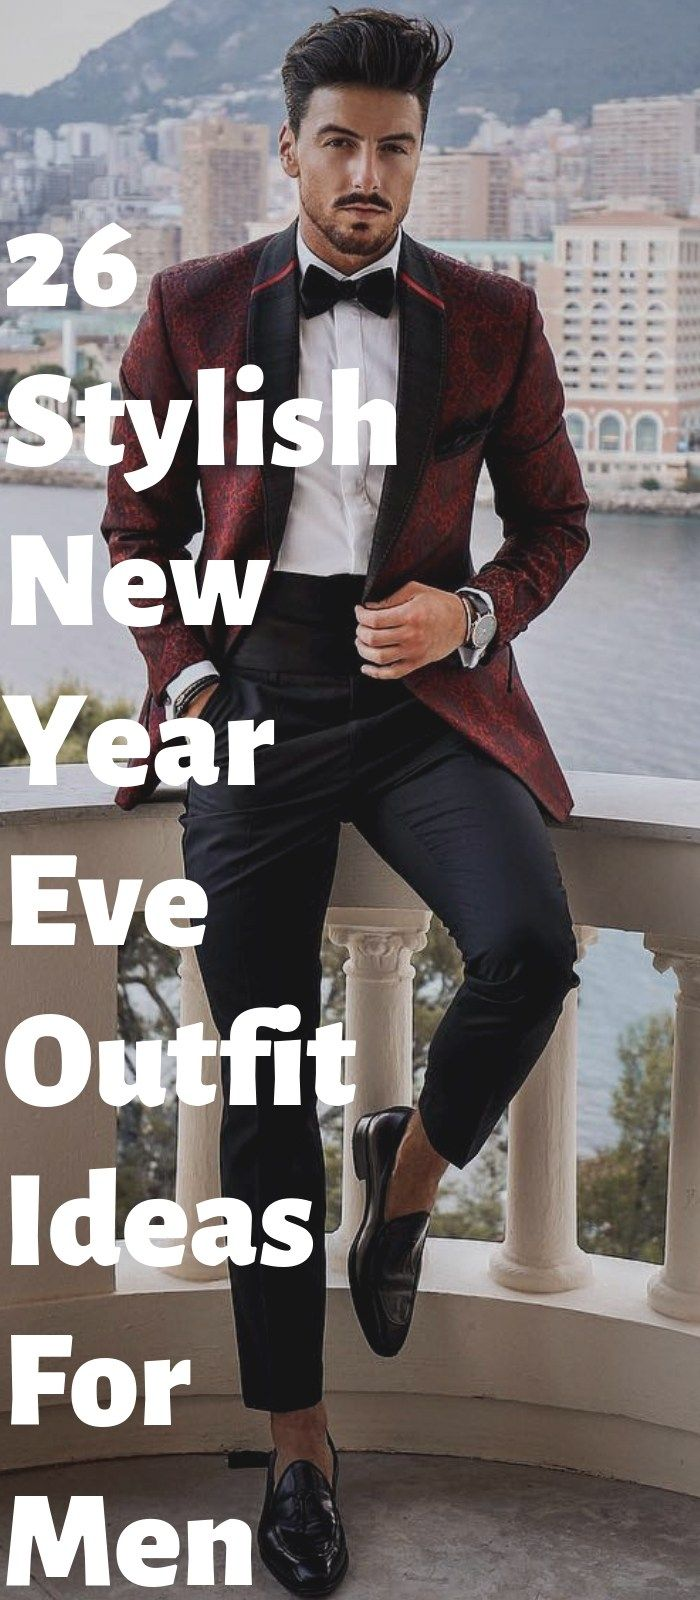 26 Trendy Men's New Year Outfit Ideas For Inspiration